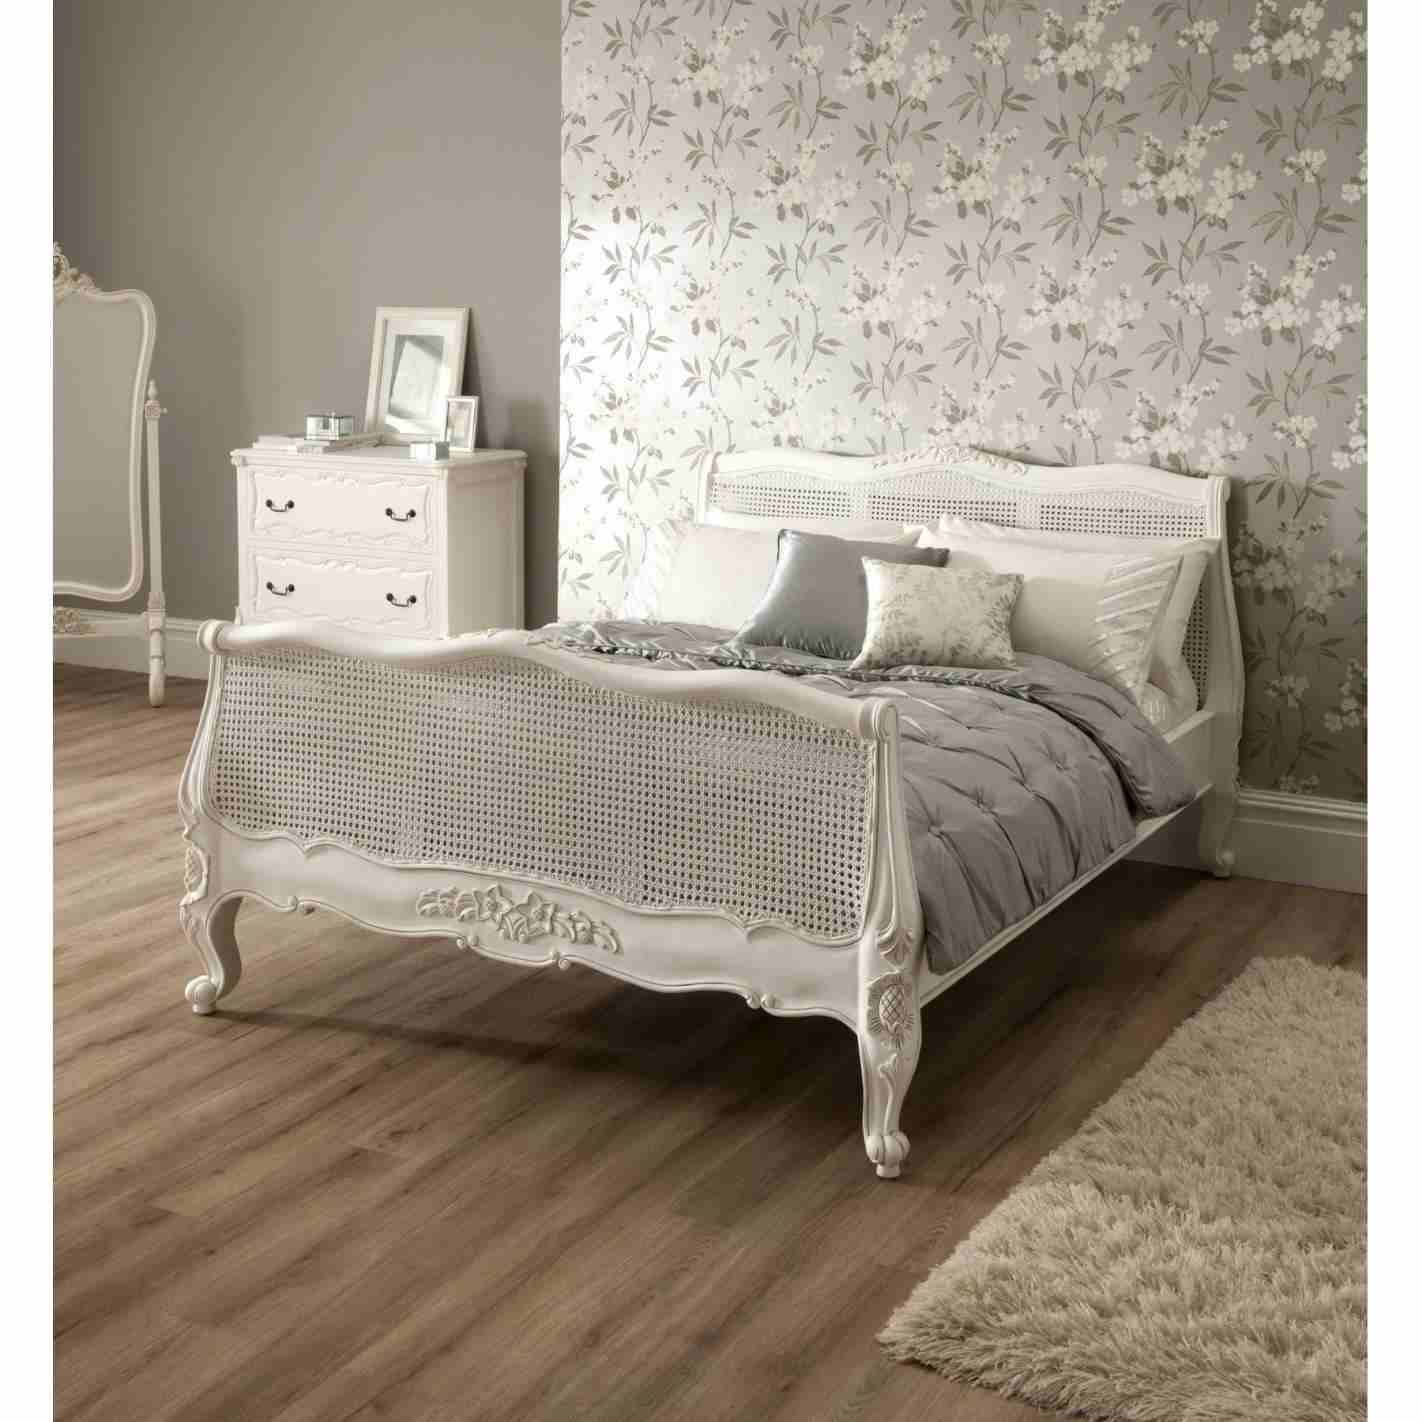 White French Bedroom Bedroom Superb Cheap French Style Bedroom Furniture Frenc Bedroom Furniture Uk Wicker Bedroom Furniture White Wicker Bedroom Furniture [ 1422 x 1422 Pixel ]